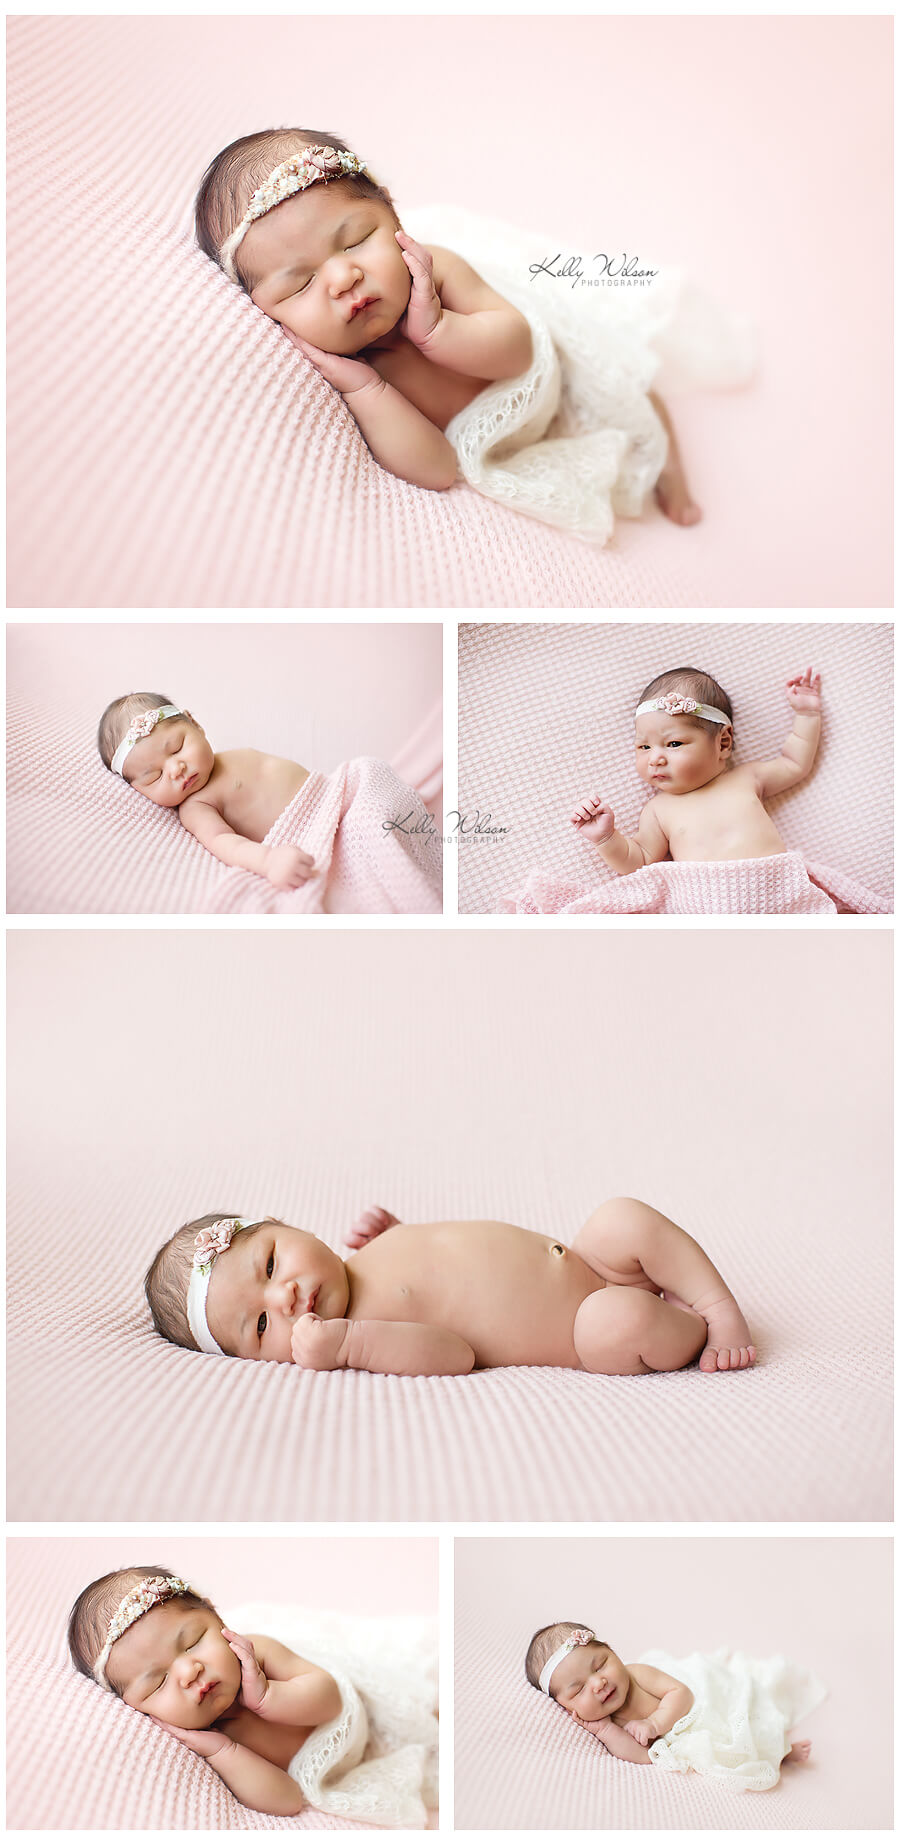 newborn posing examples for newborn photography